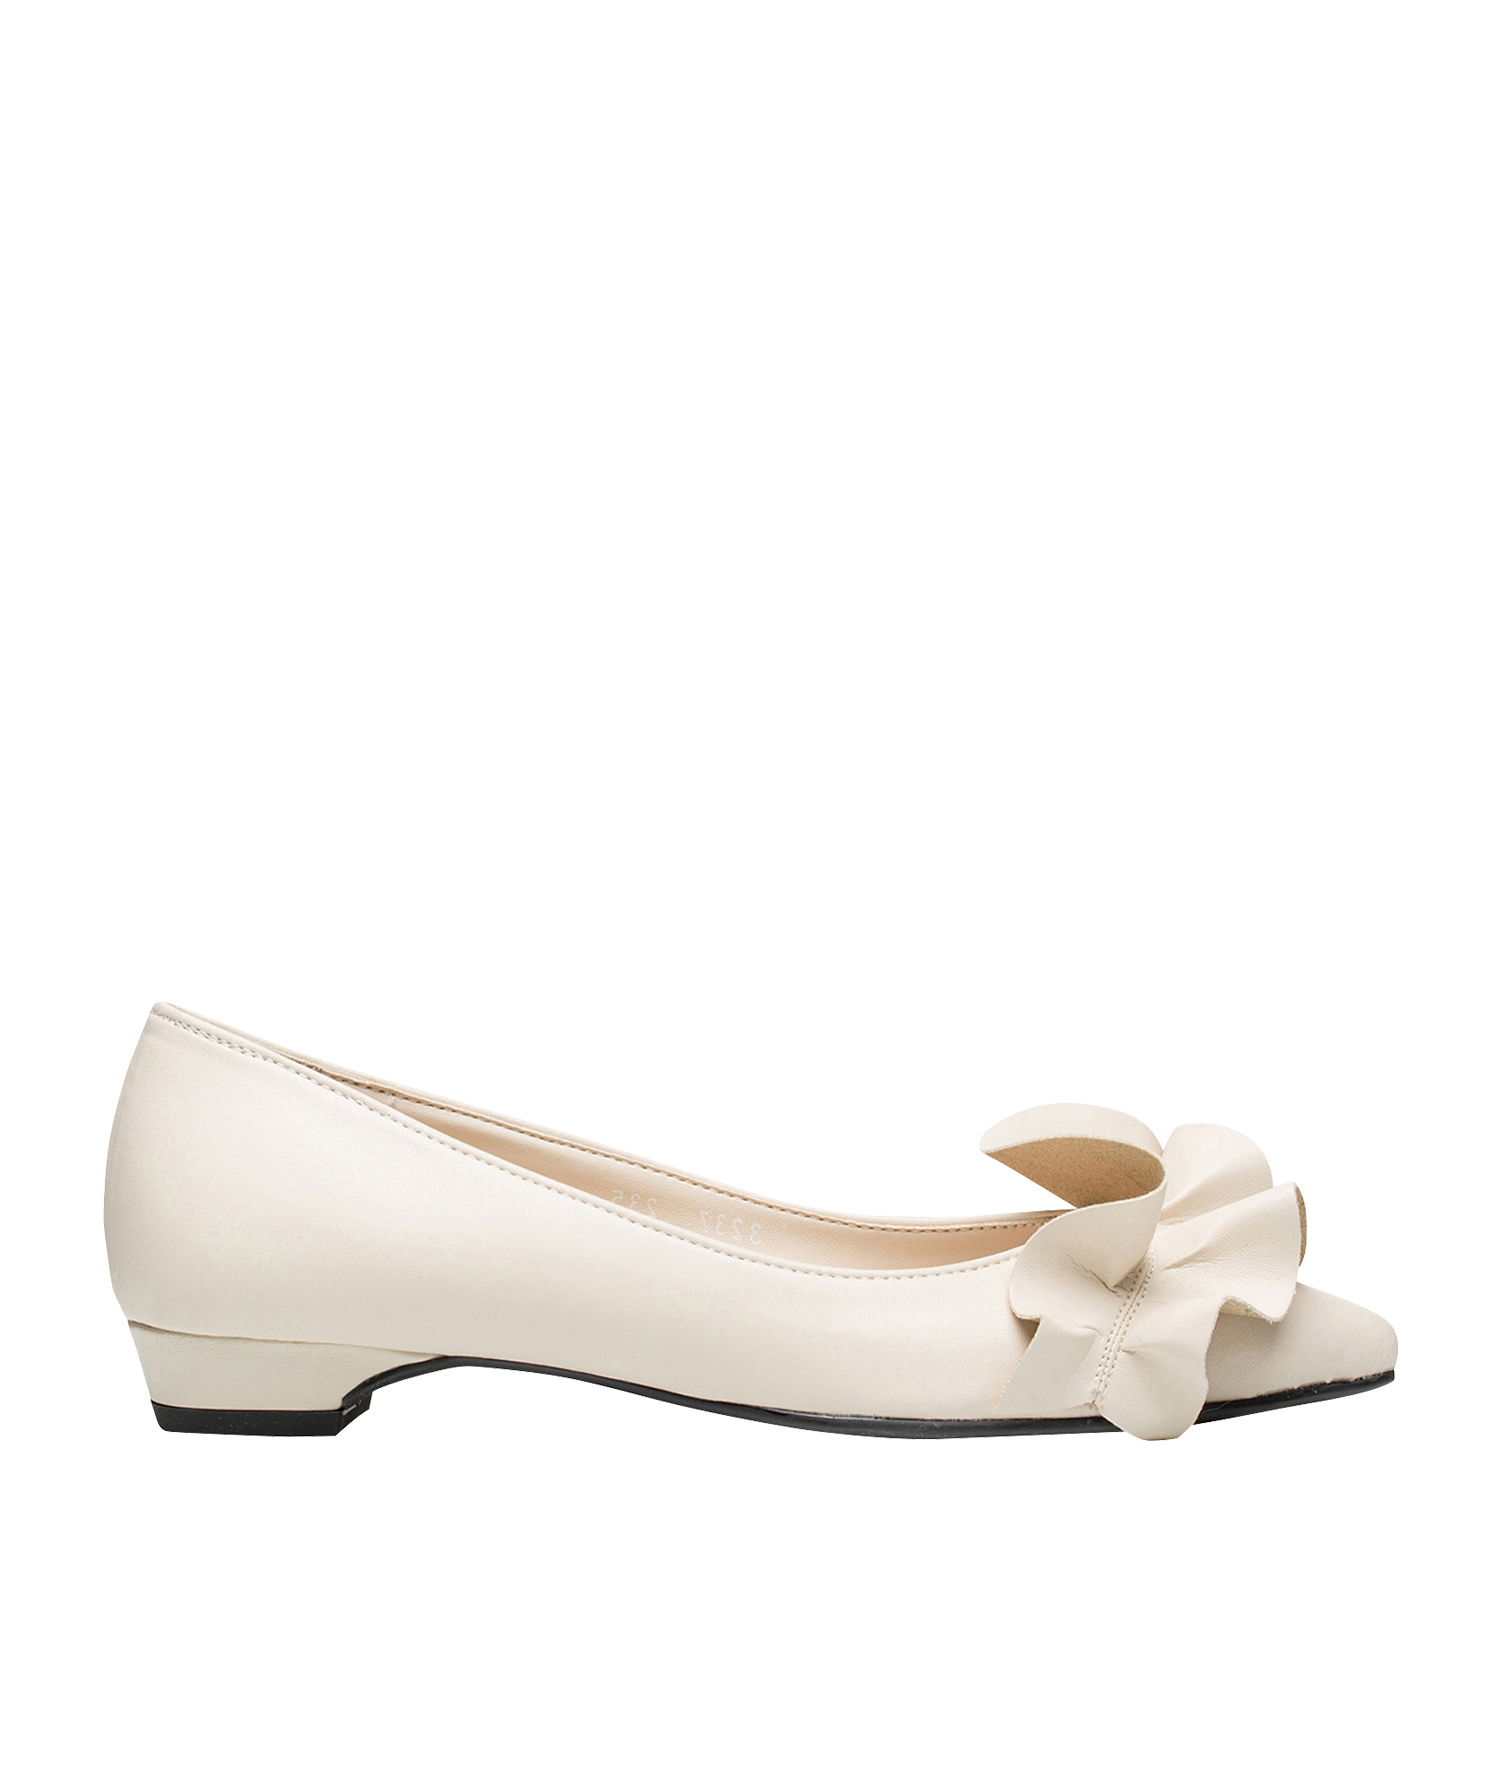 acf4f1c4737 AnnaKastle Womens Ruffle Accent Pointy Low Heel Pumps Ivory